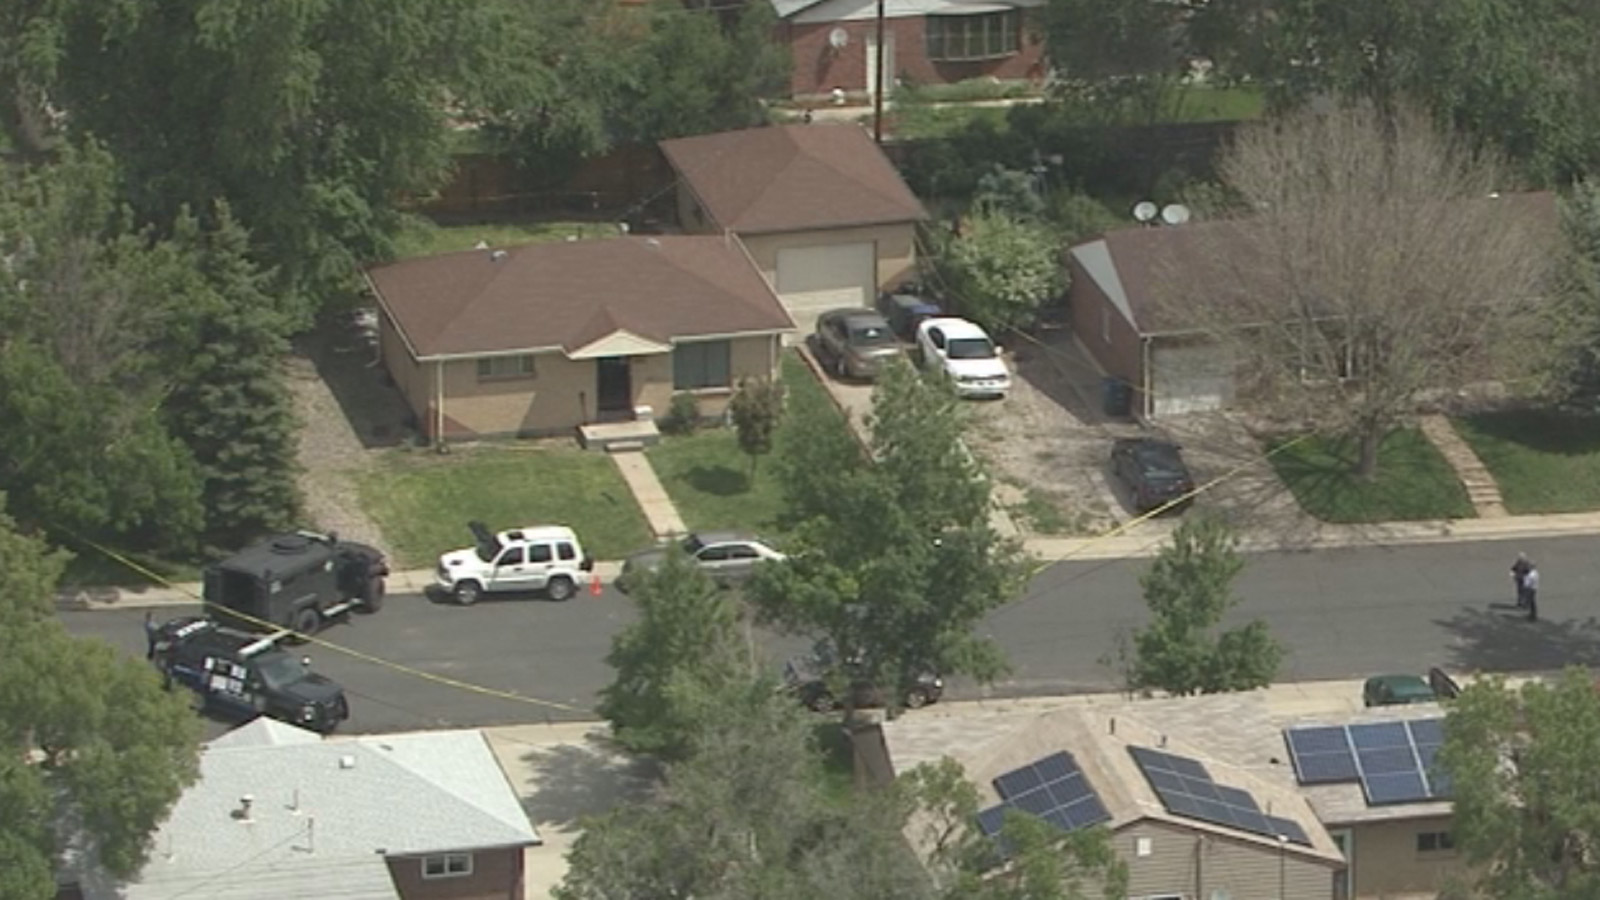 Copter4 flew over the scene where the Northglenn officer was shot (credit: CBS)